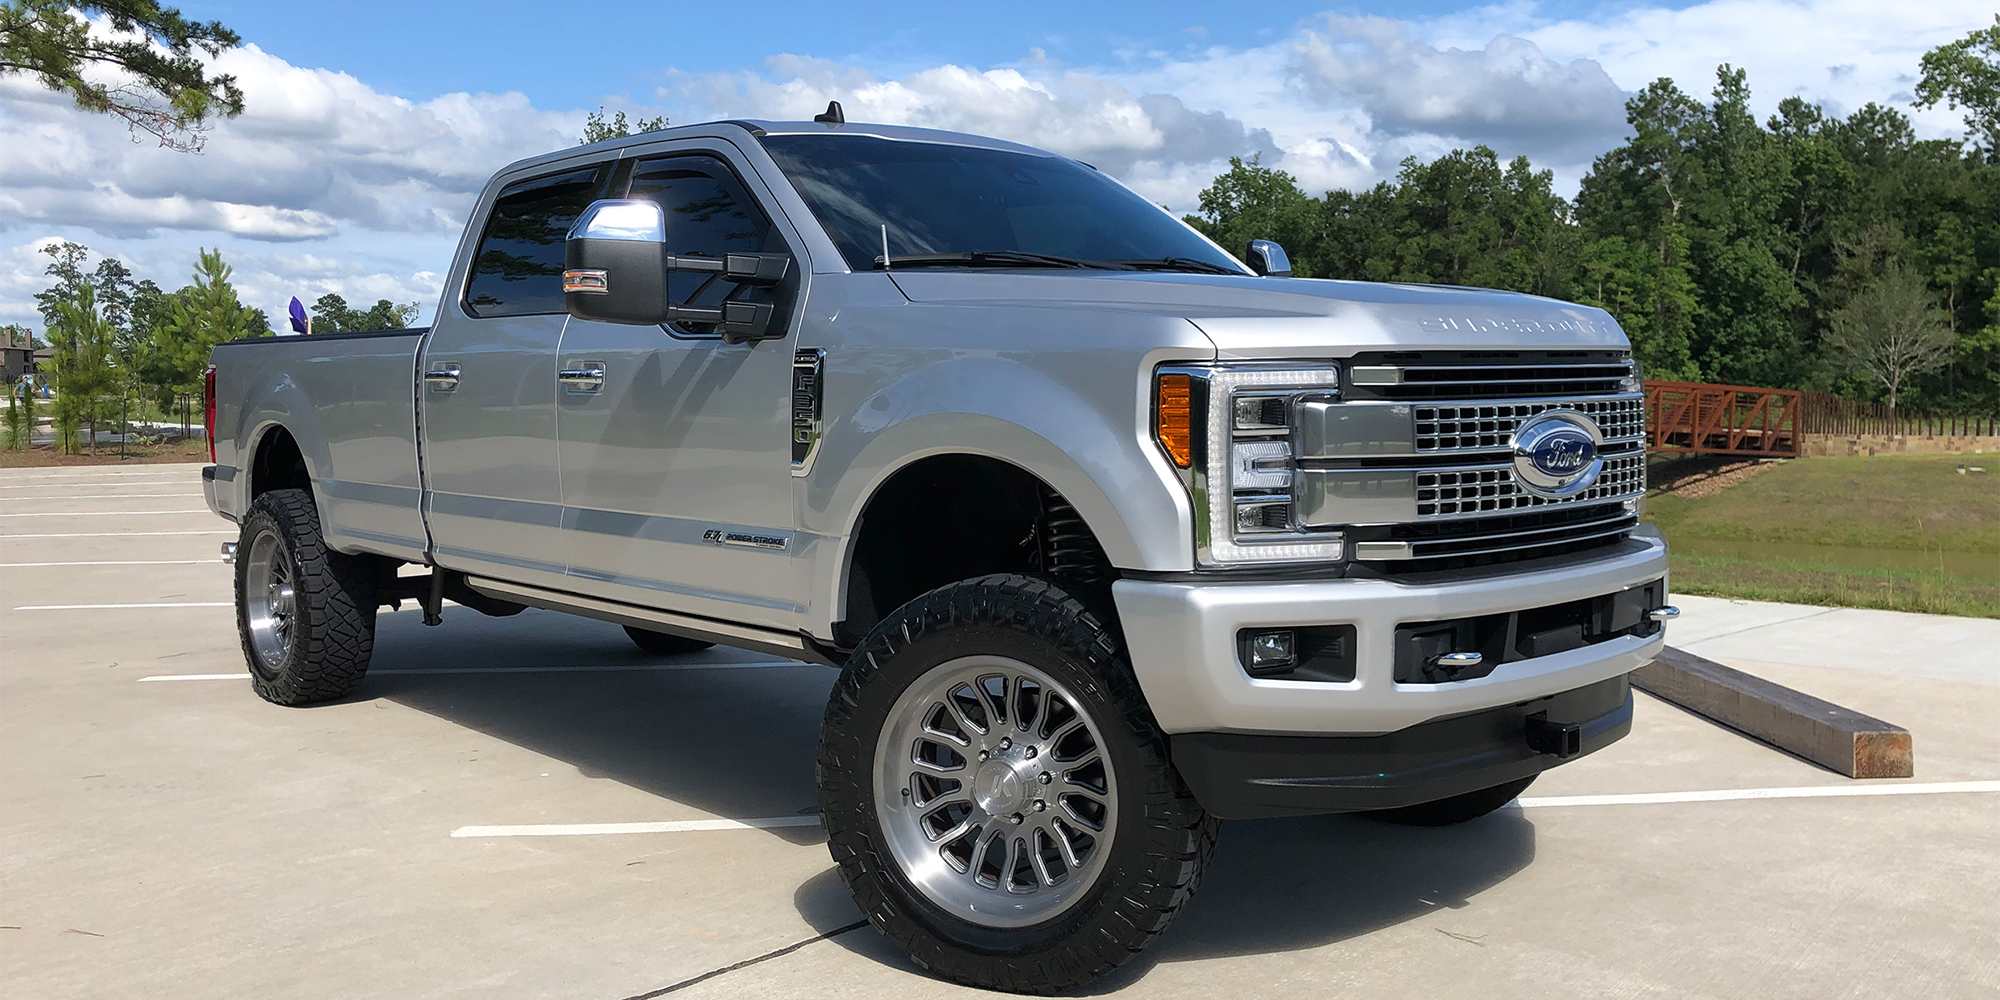 Ford F-350 Super Duty with Asanti Off-Road AB815 Workhorse